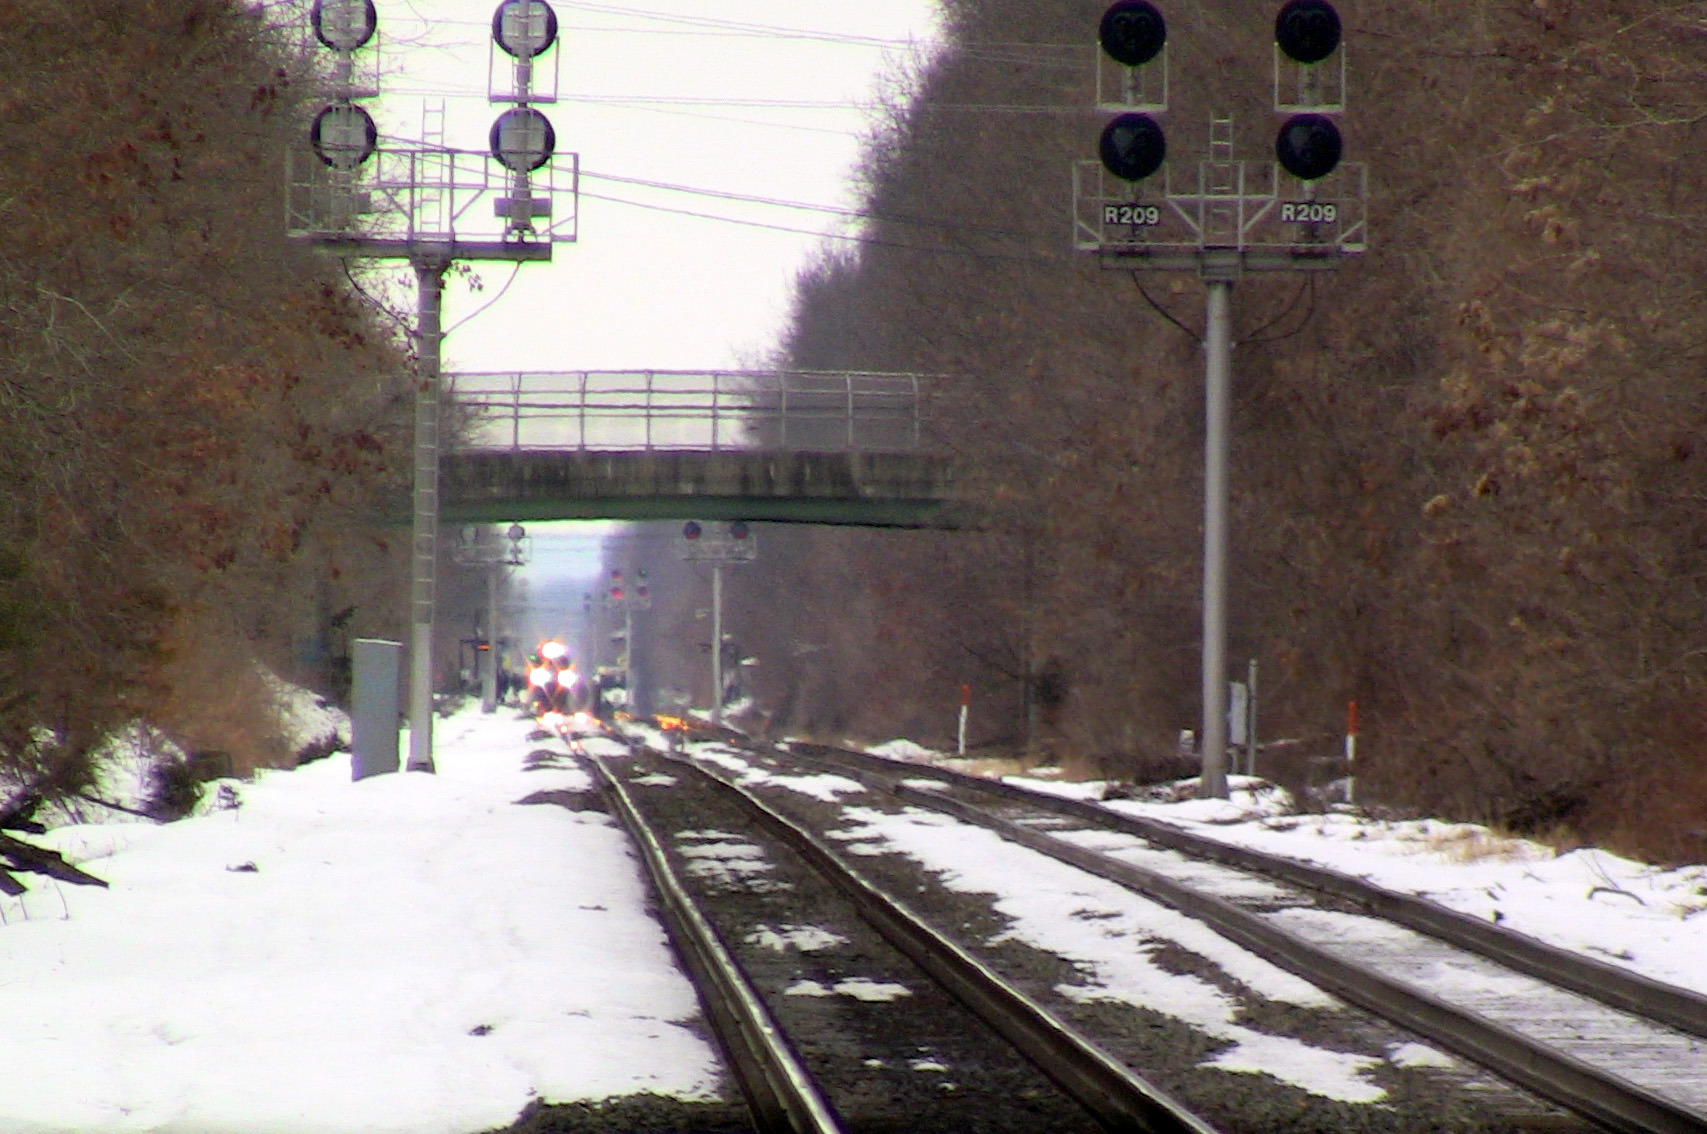 f20451a4bc78f1813f6a_First_dual-powered_train_approaches_Fanwood_station.jpg